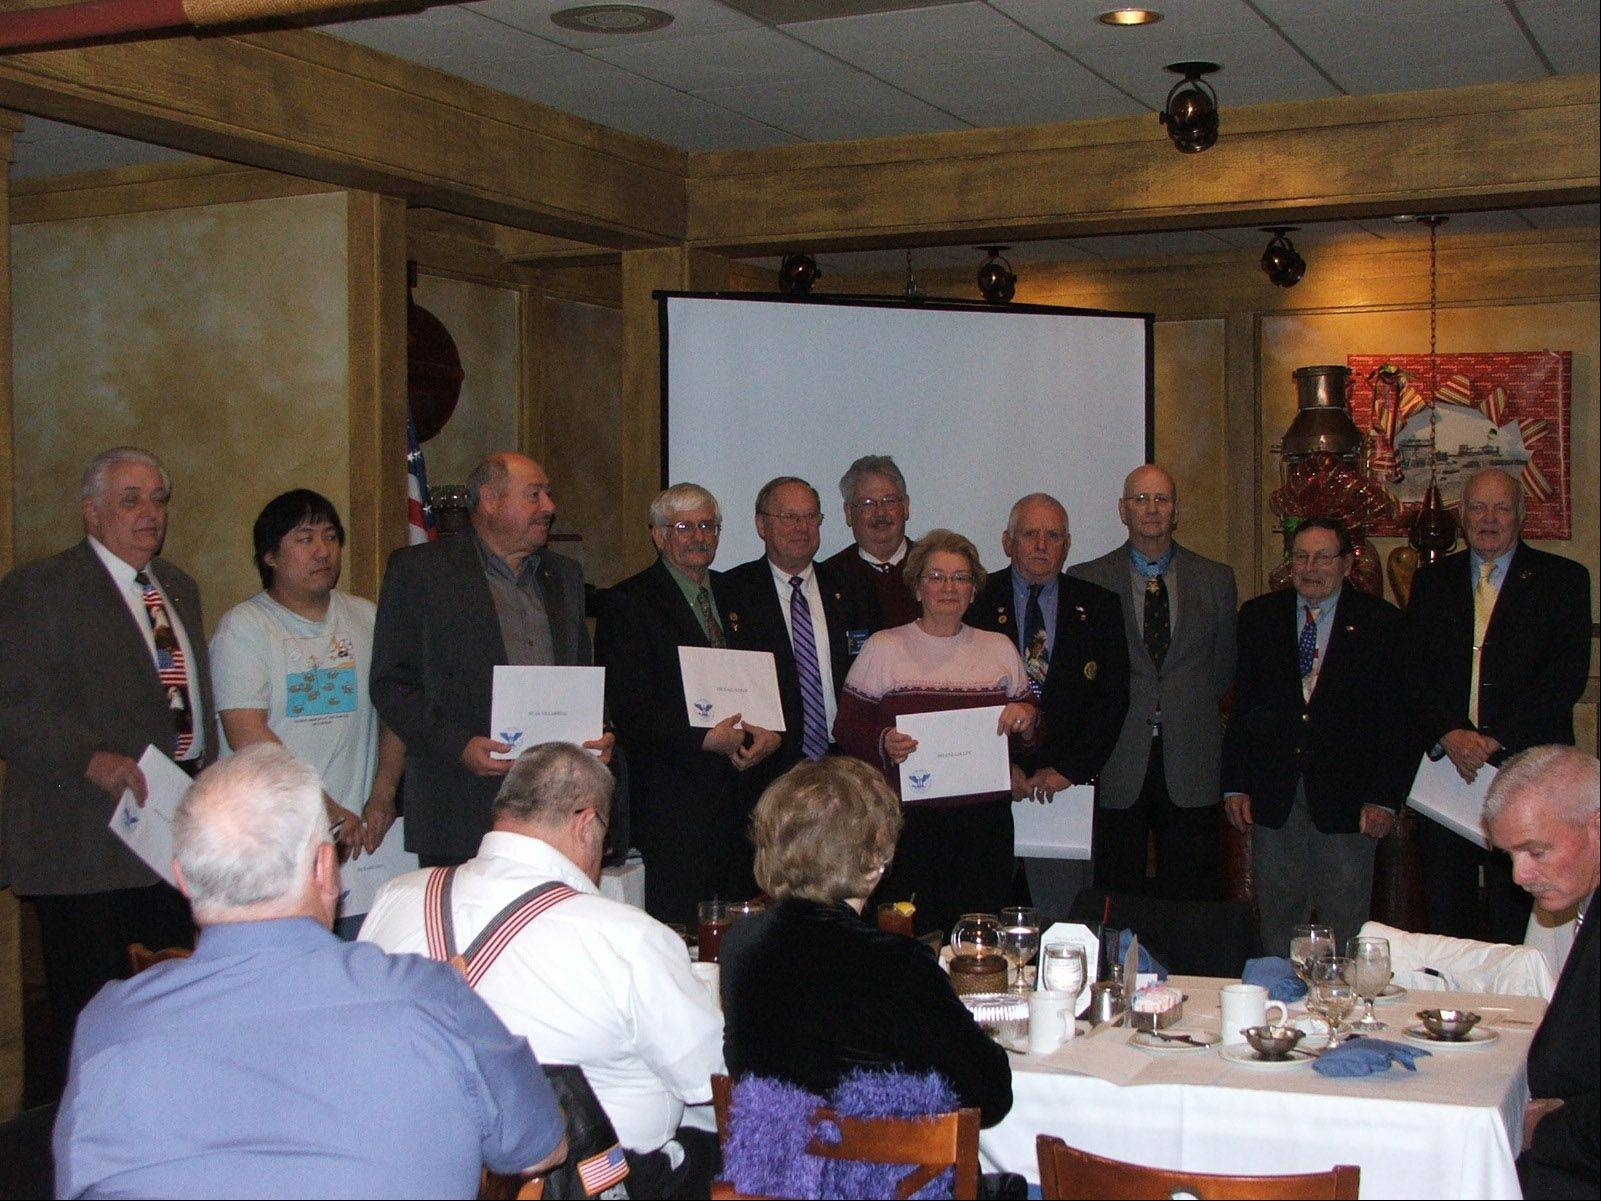 VAC volunteers with over 500 hours receiving the President Gold Pin with letter from President Obama, left to right, Bernard J. Voit, Richard Moy, Stan Villarreal, Mike Kozar, Tom Marciciak, Bob Cloud, Arlene Lolly, Nicholas Konz, Al Lynch, Norm Arnswald and Richard Johnson.